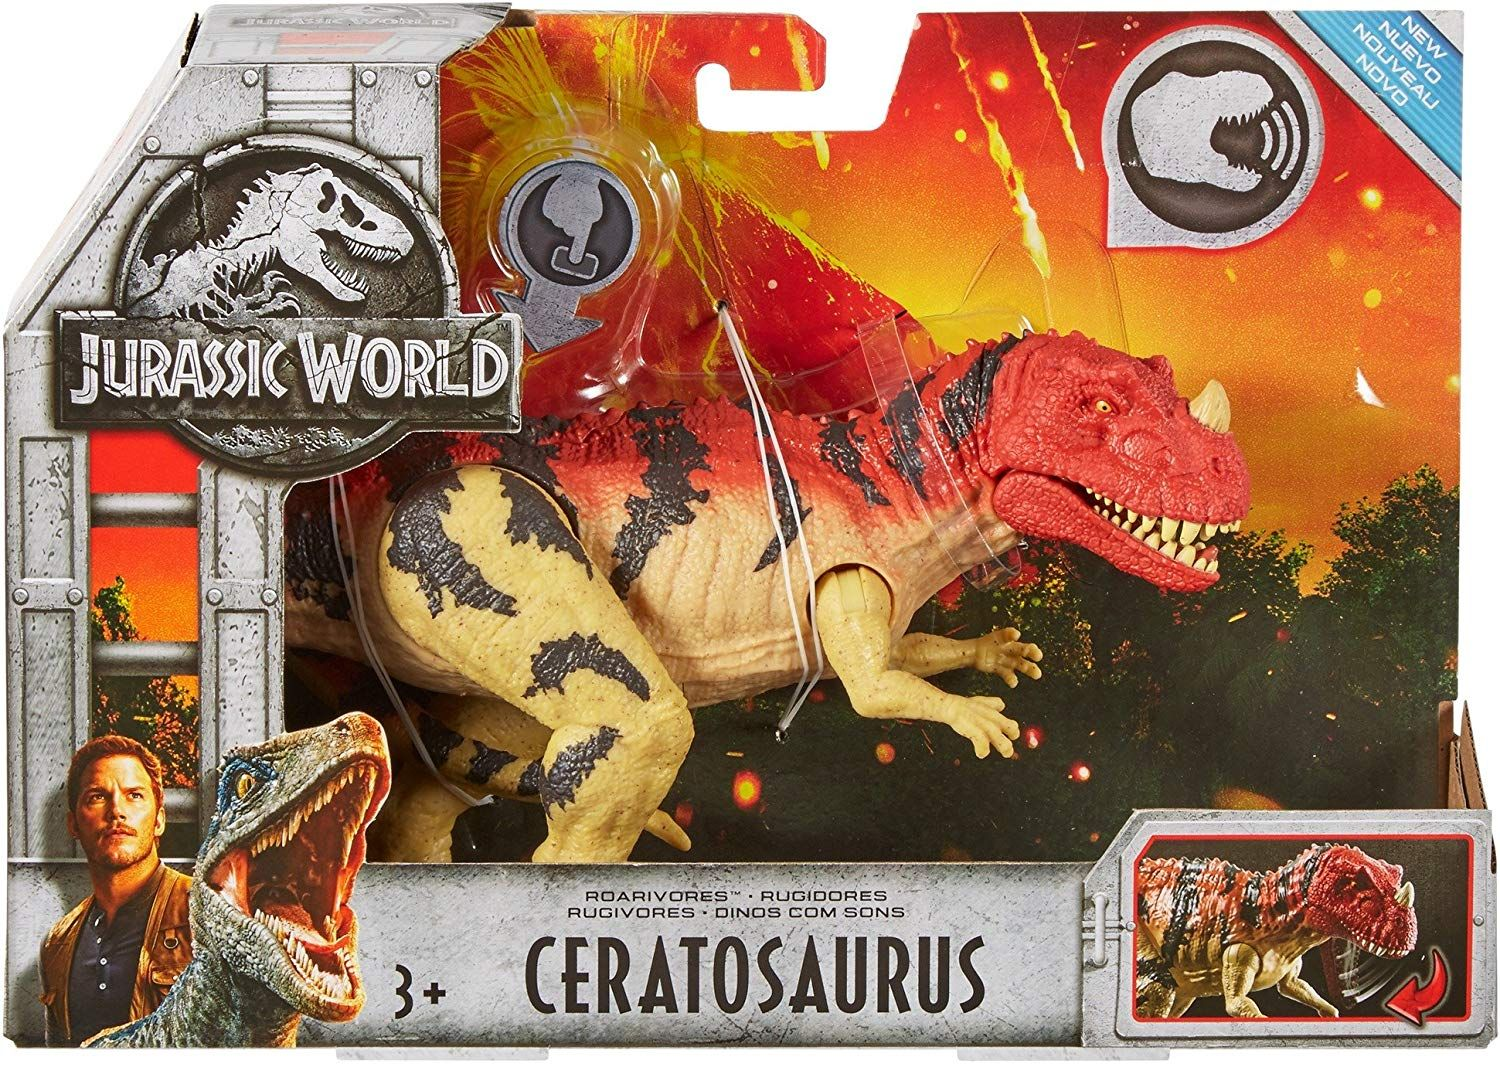 Jurassic World FMM29 Roarivores Ceratosaurus Amazon.co.uk